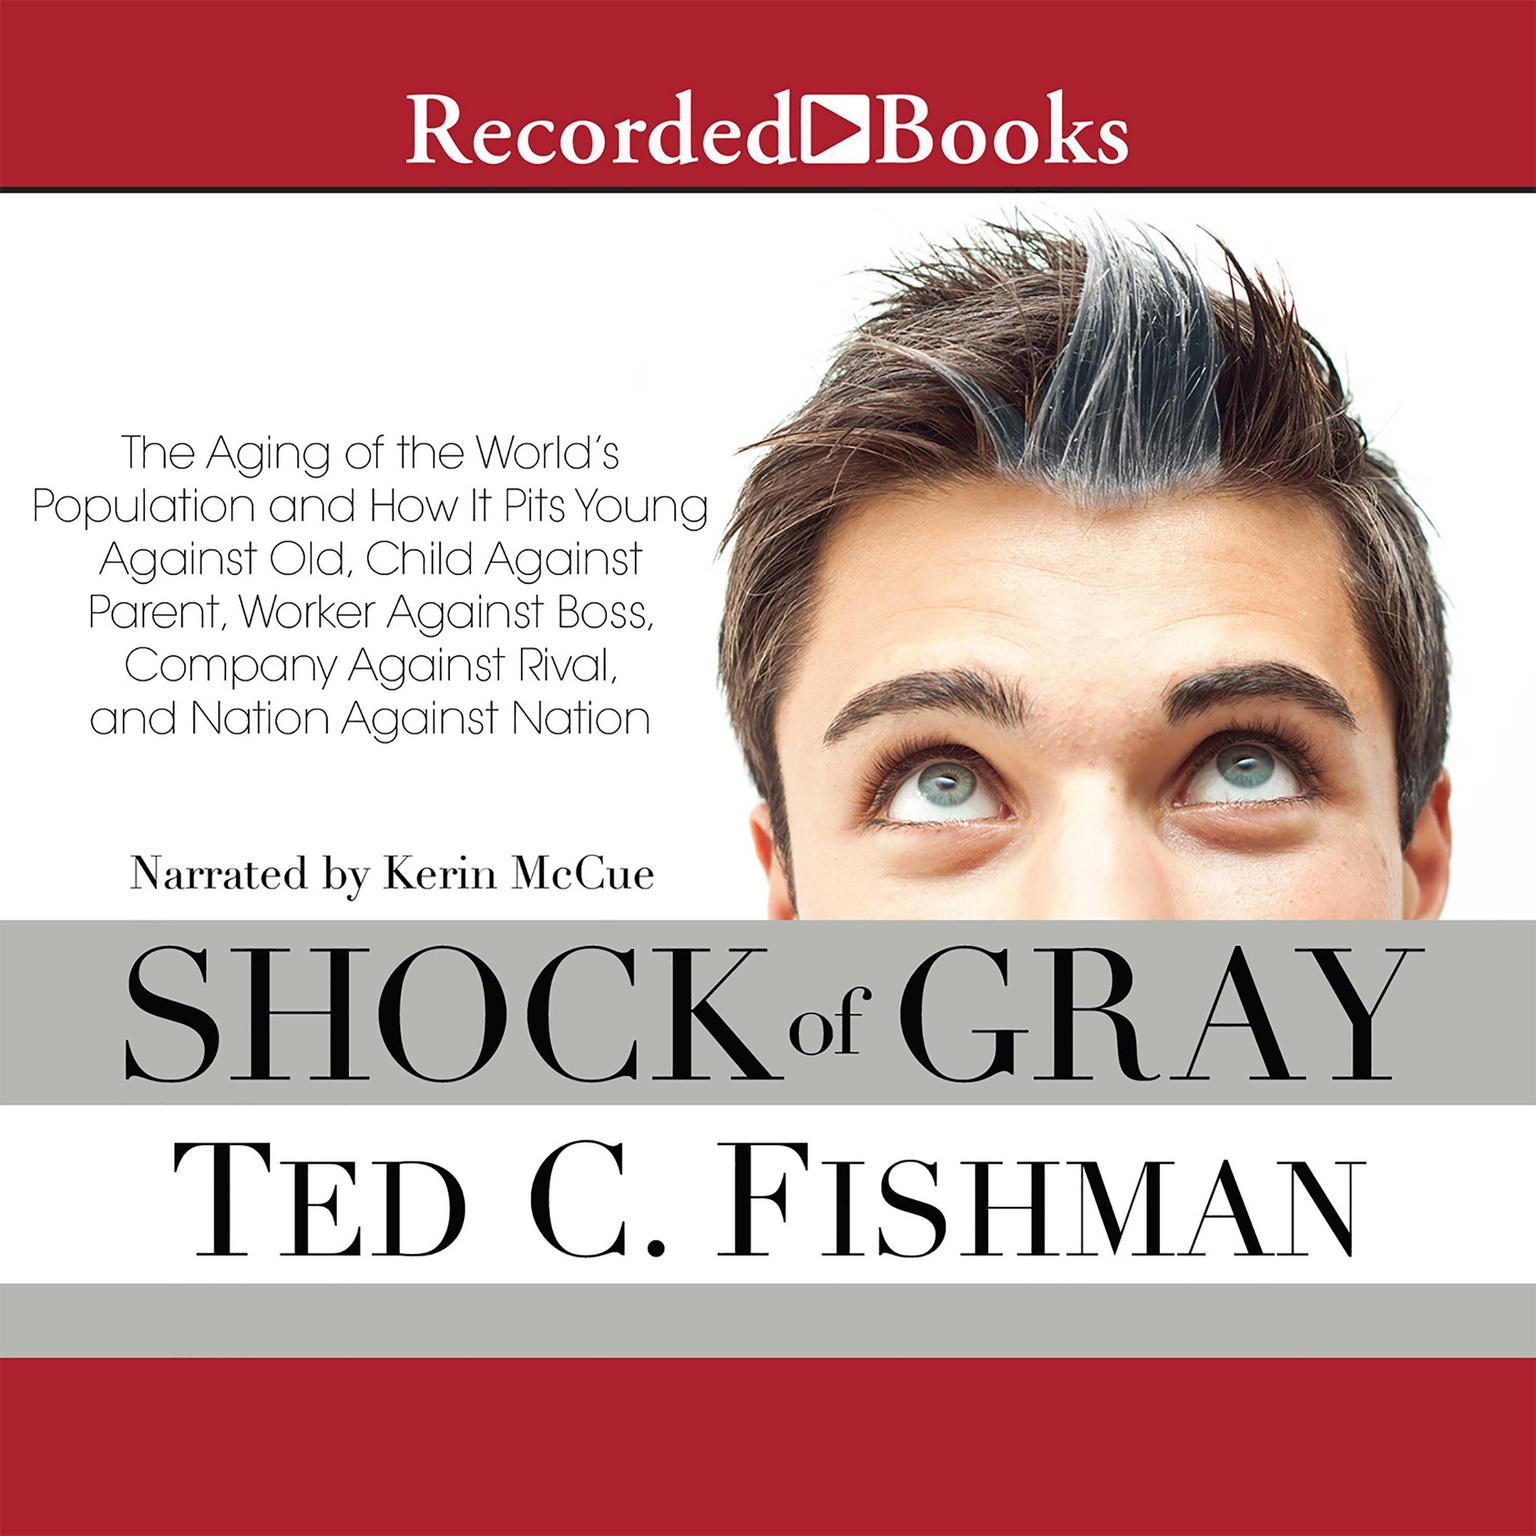 Printable Shock of Gray: The Aging of The World's Population And How It Pits Young Against Old, Child Against Parent, Worker Against Boss, Company Against Rival And Nation Audiobook Cover Art